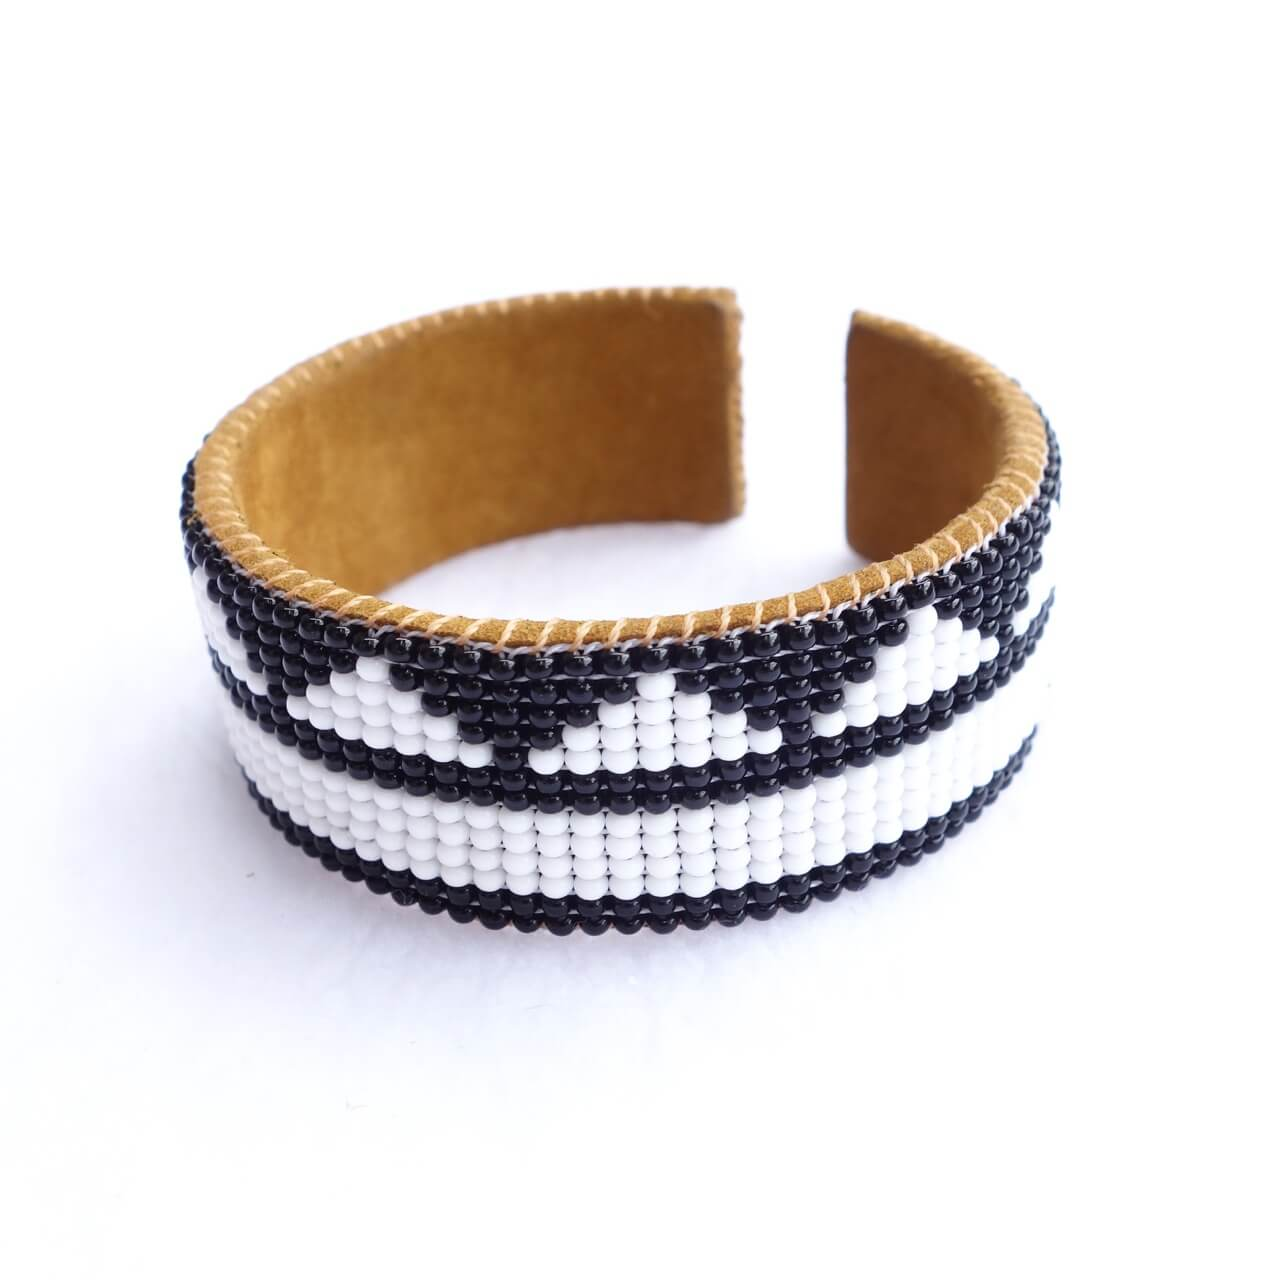 Seed Beads and Leather Cuff Bracelet